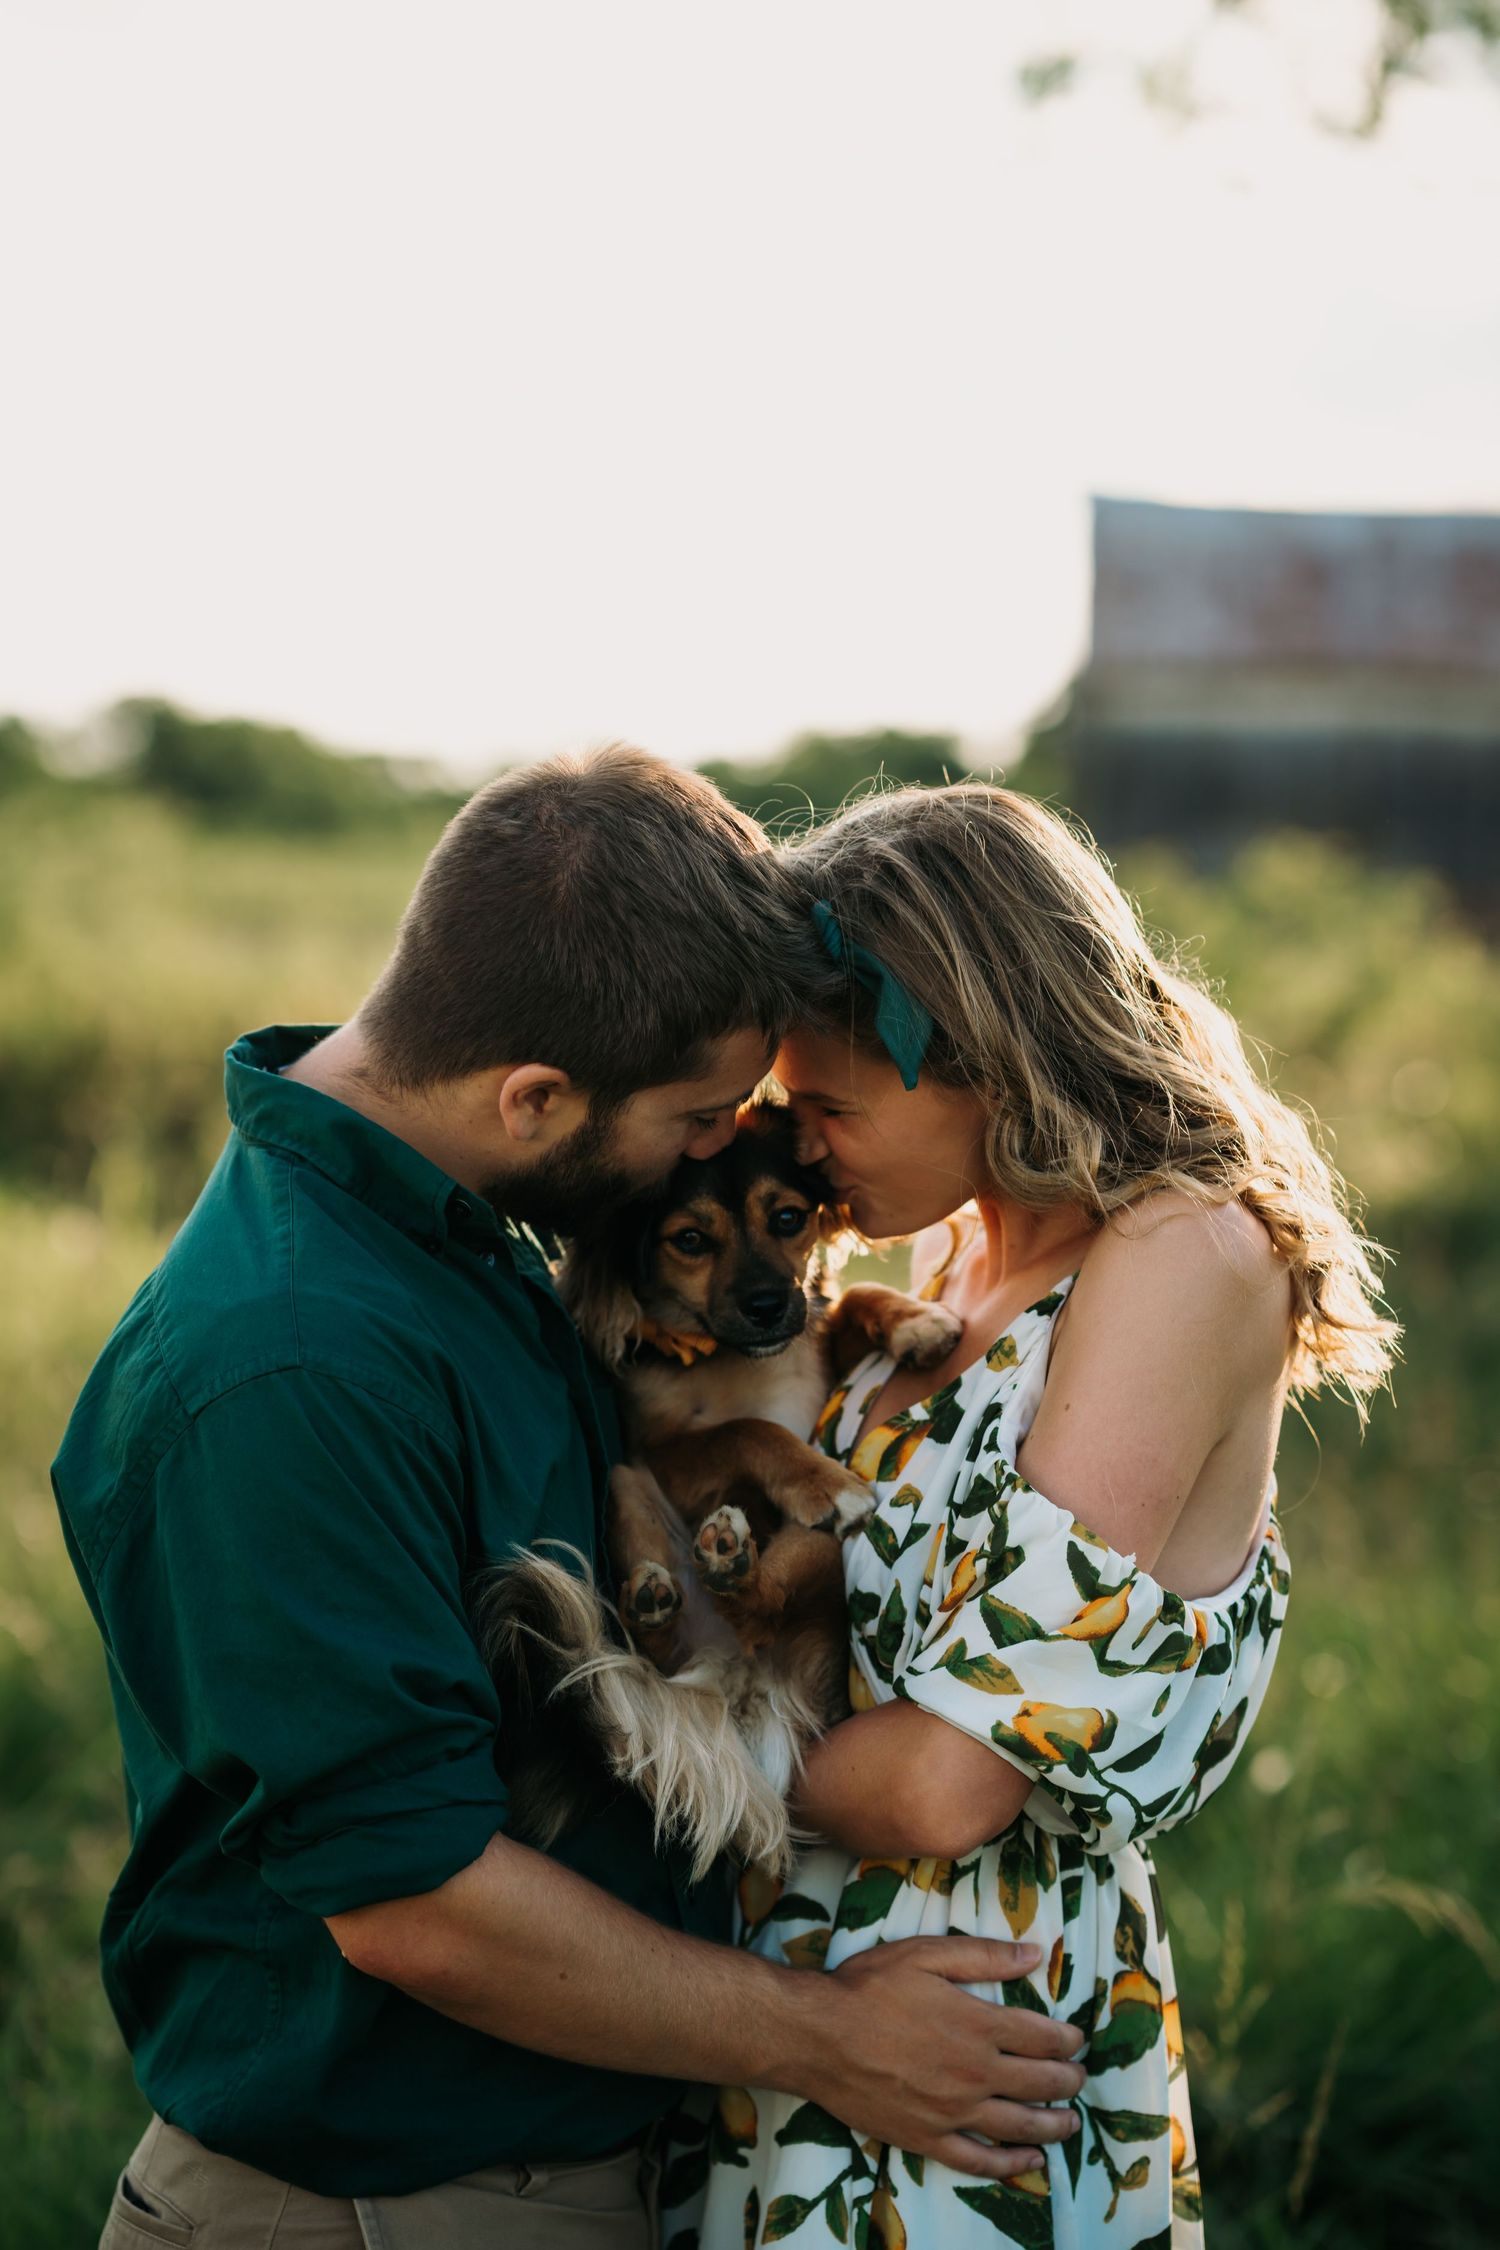 Family pet photographer in Cincinnati Oh Dog first birthday photos Dayton Ohio Couples photography near me